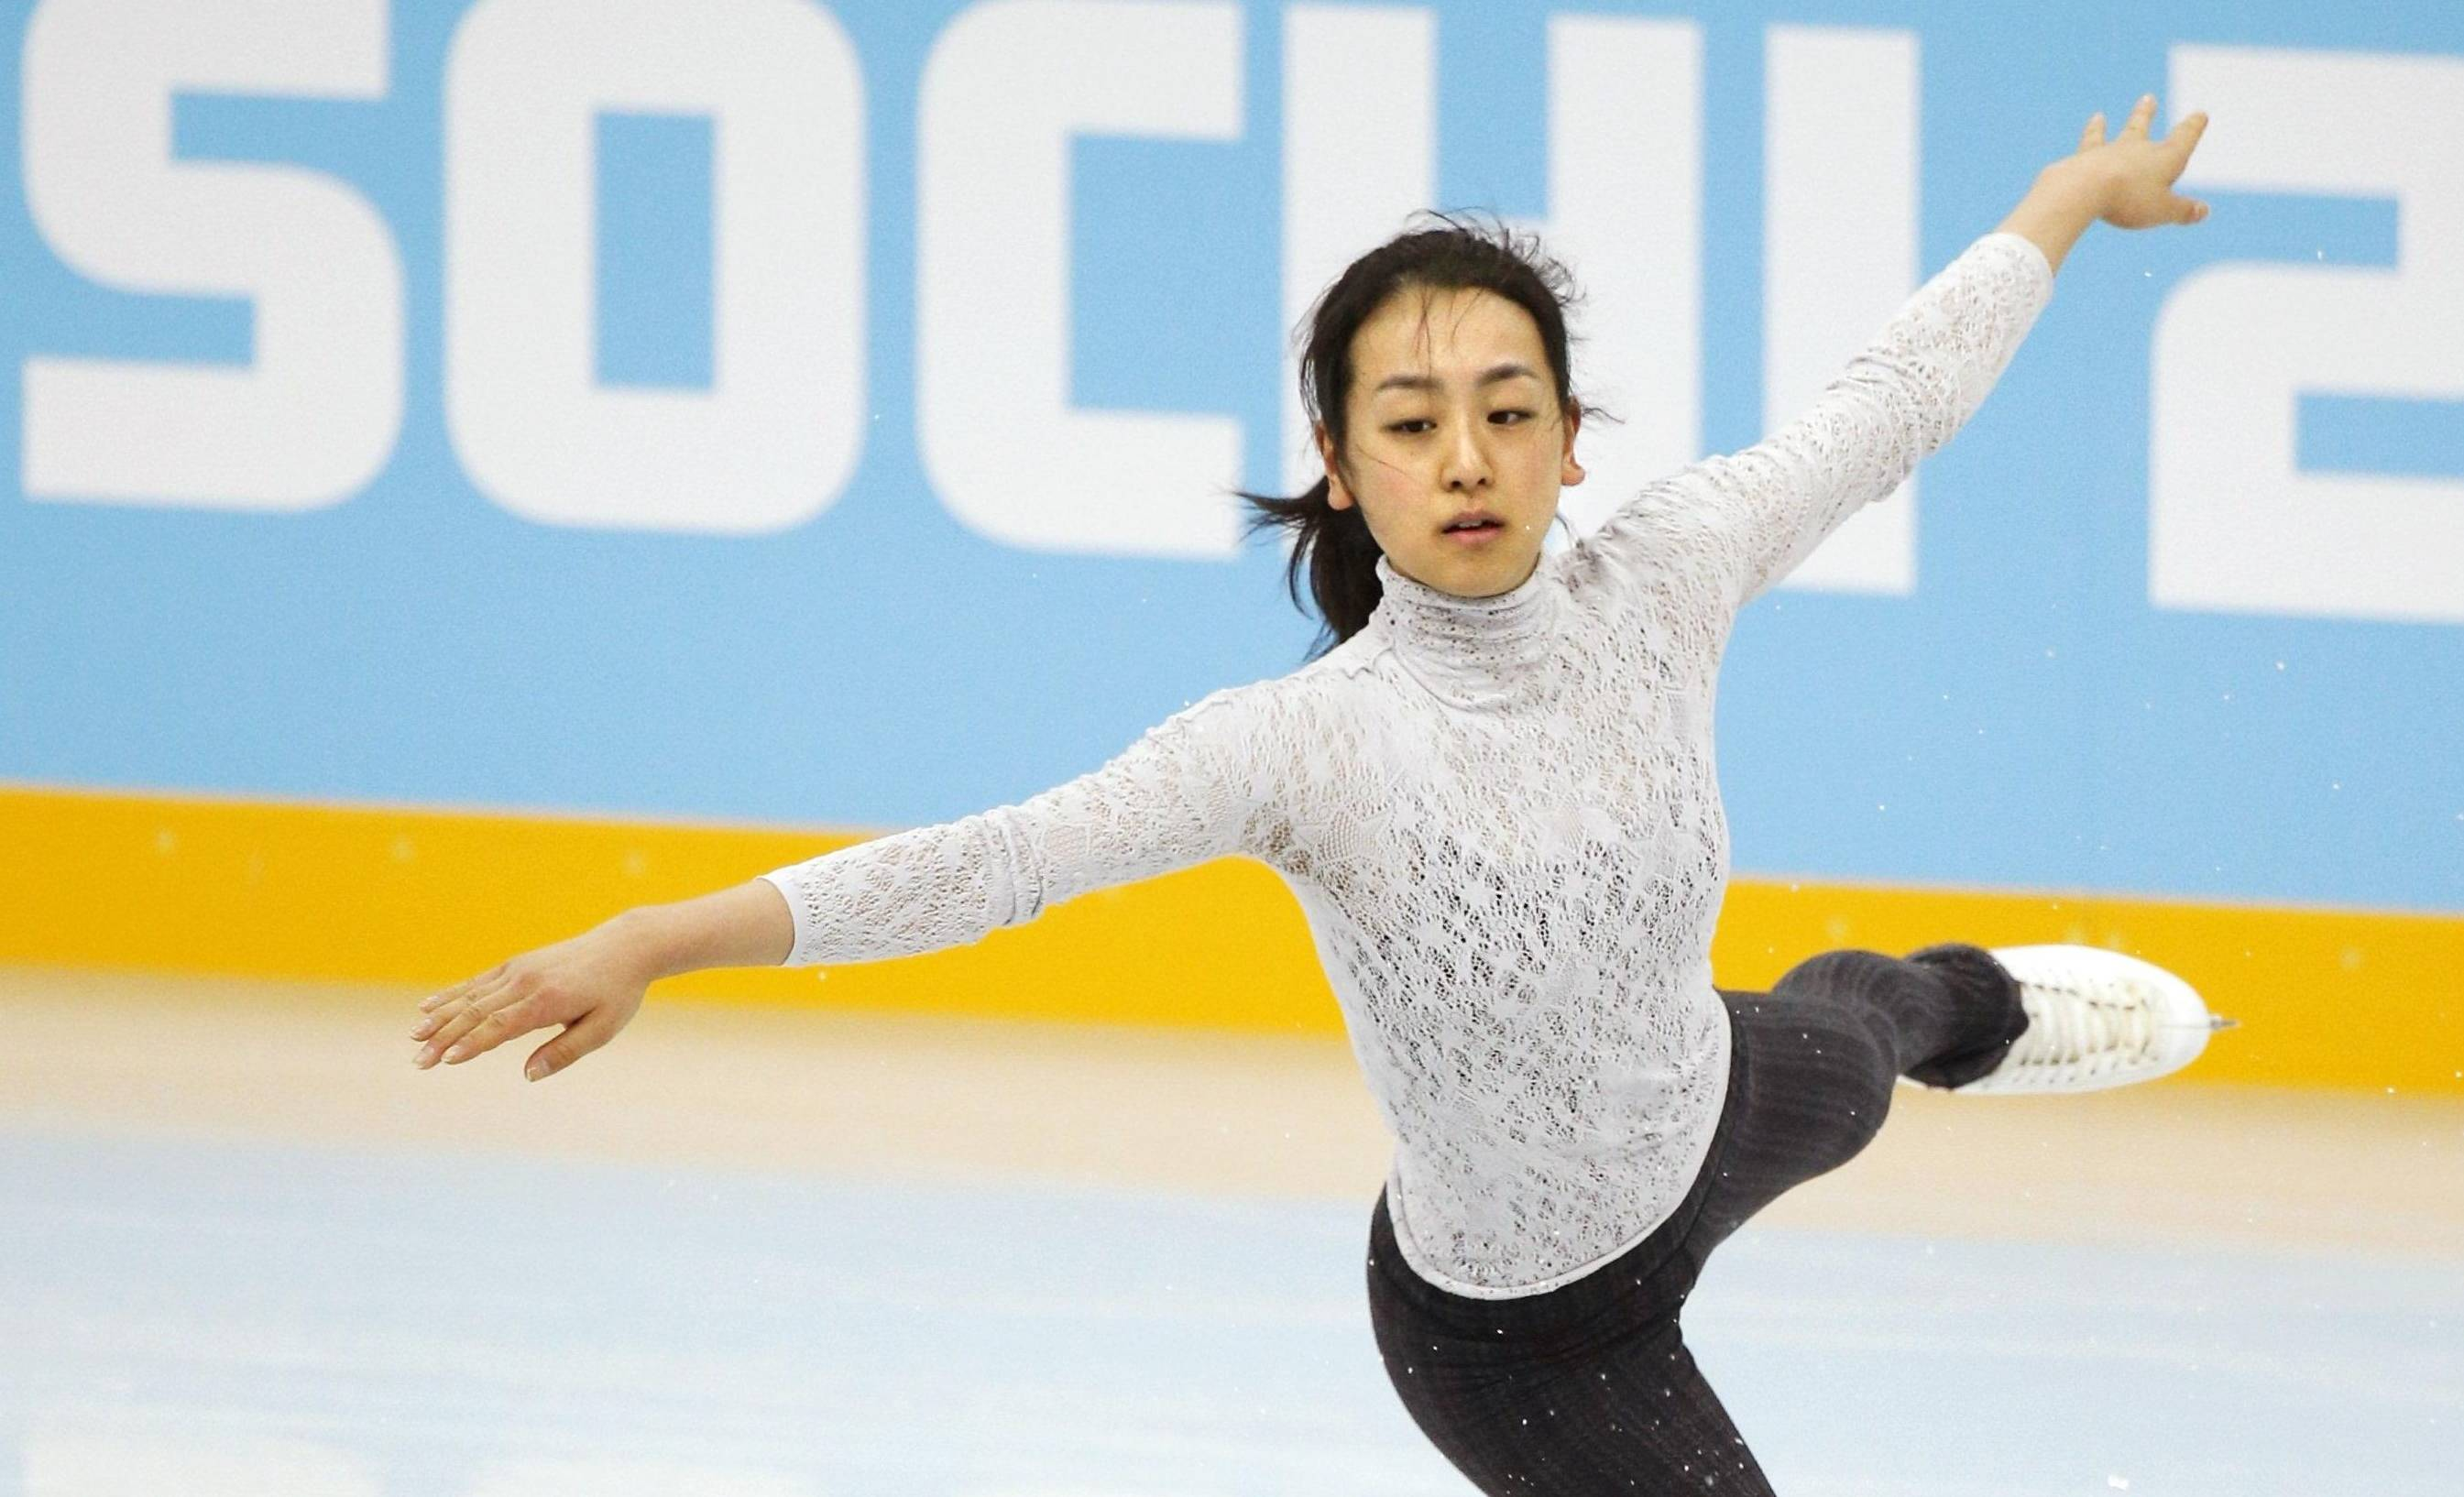 Getting closer: Mao Asada skates on the practice rink at the Sochi Olympics on Monday. | KYODO